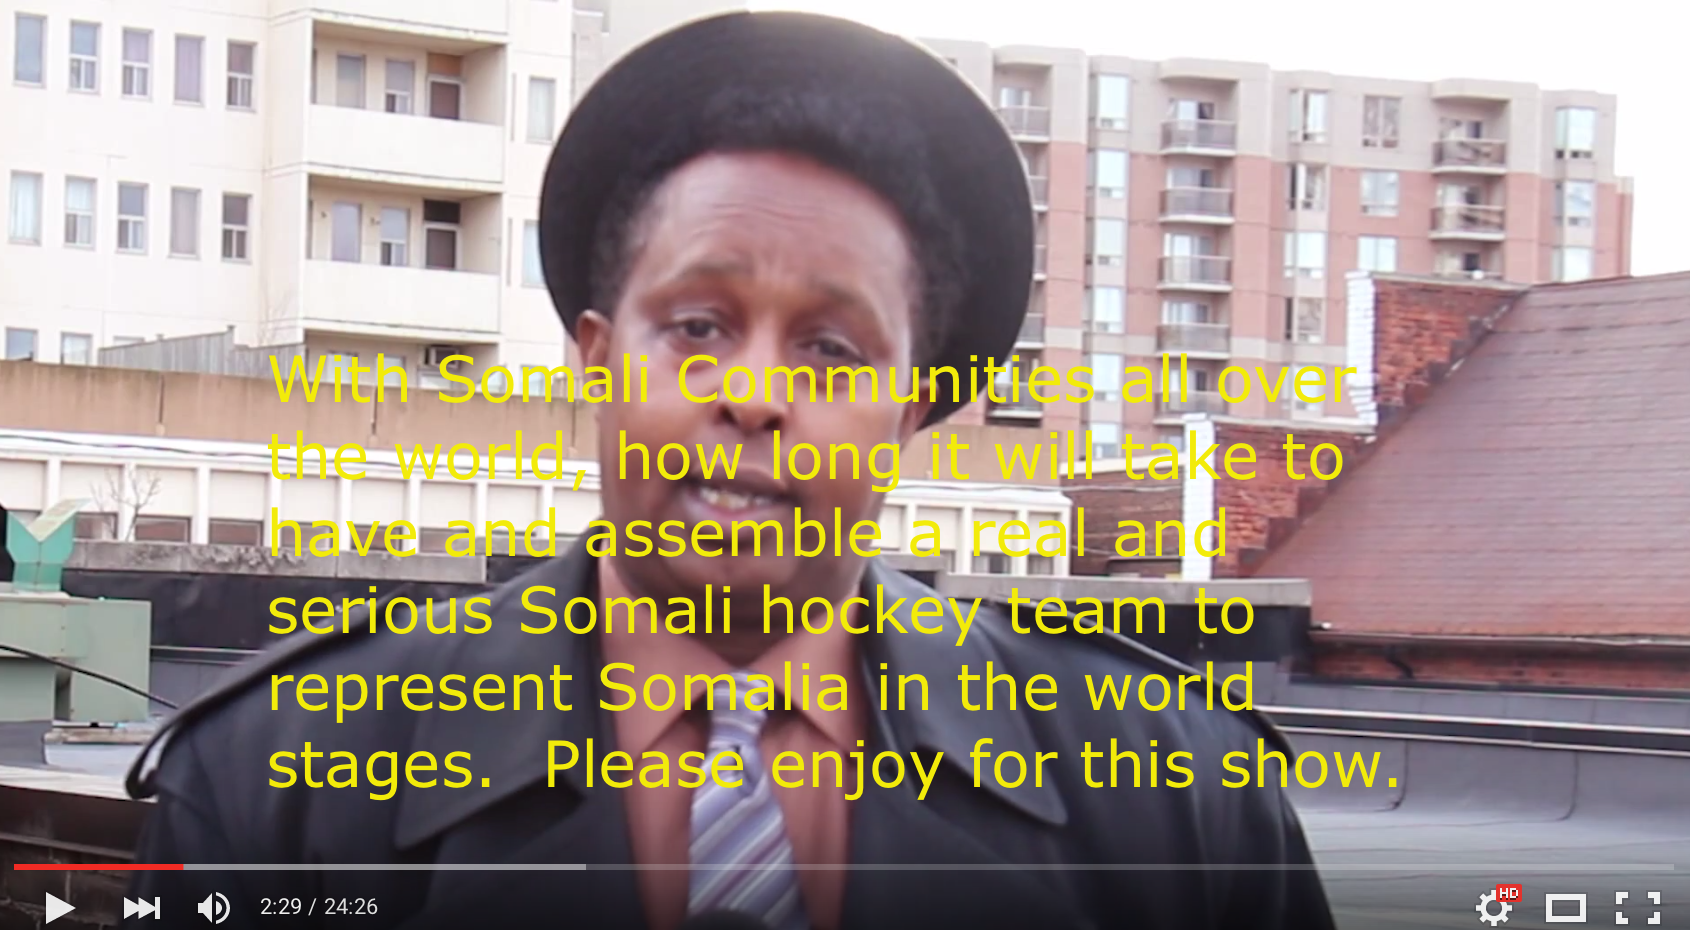 Video serious Somali hockey team to represent Somalia in the world stages - Show